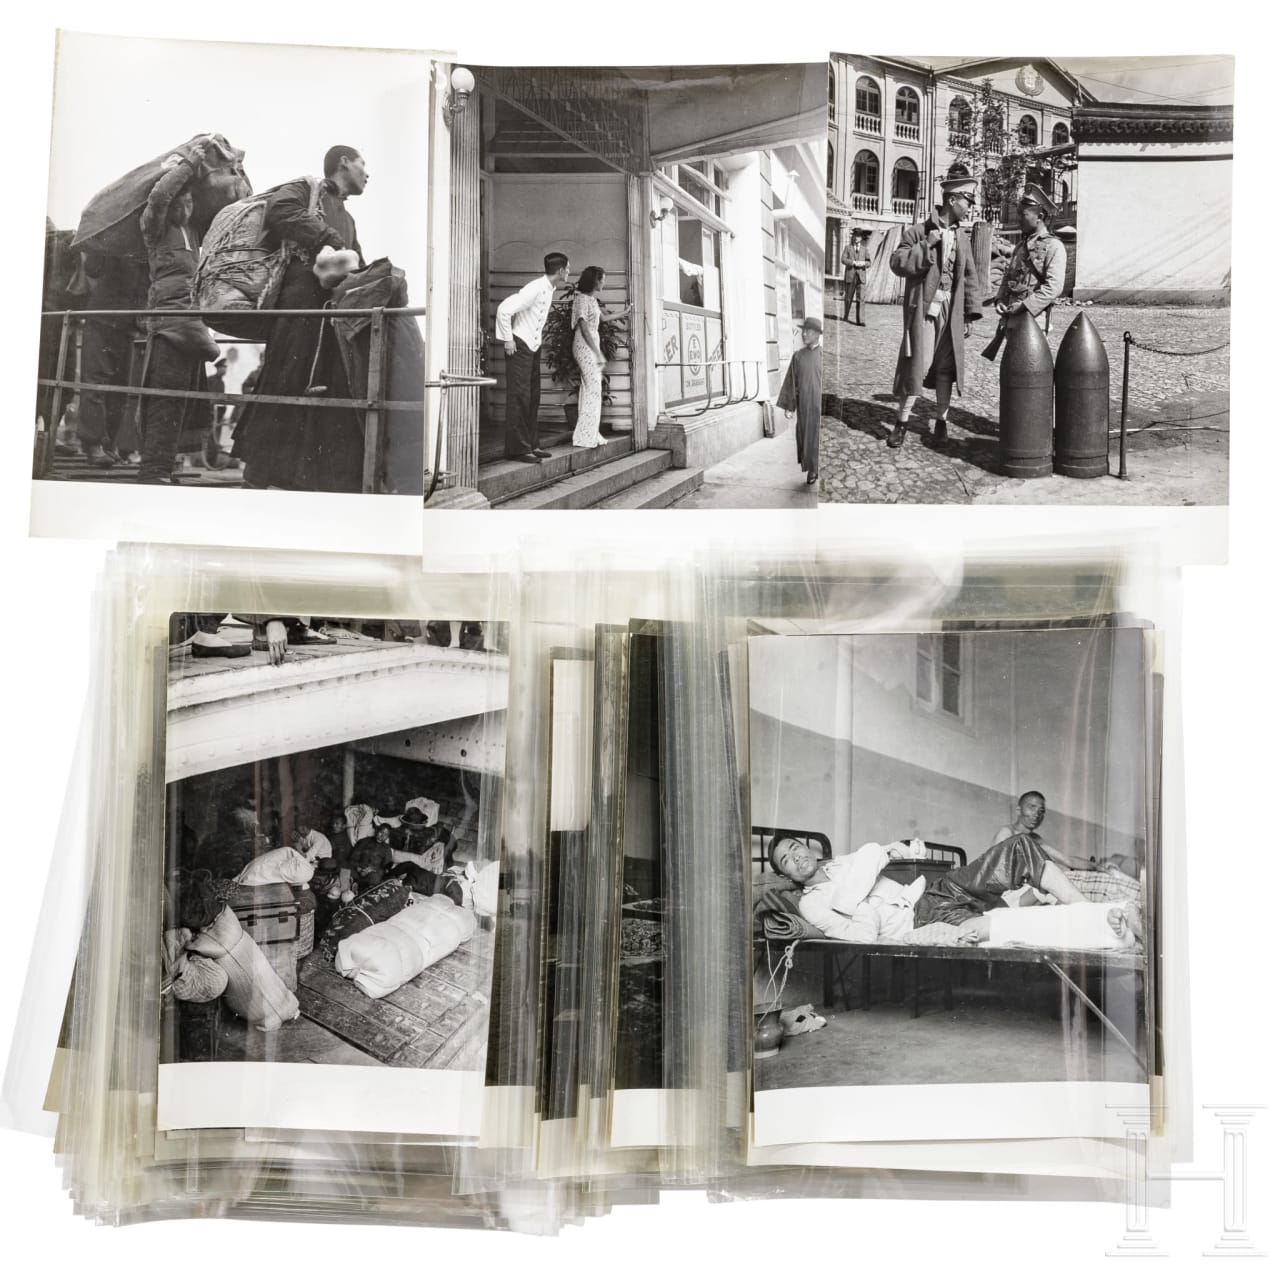 A collection of photographs by Pierre Verger of the 1937 battle of Shanghai (淞沪会战), Sino-Japanese War